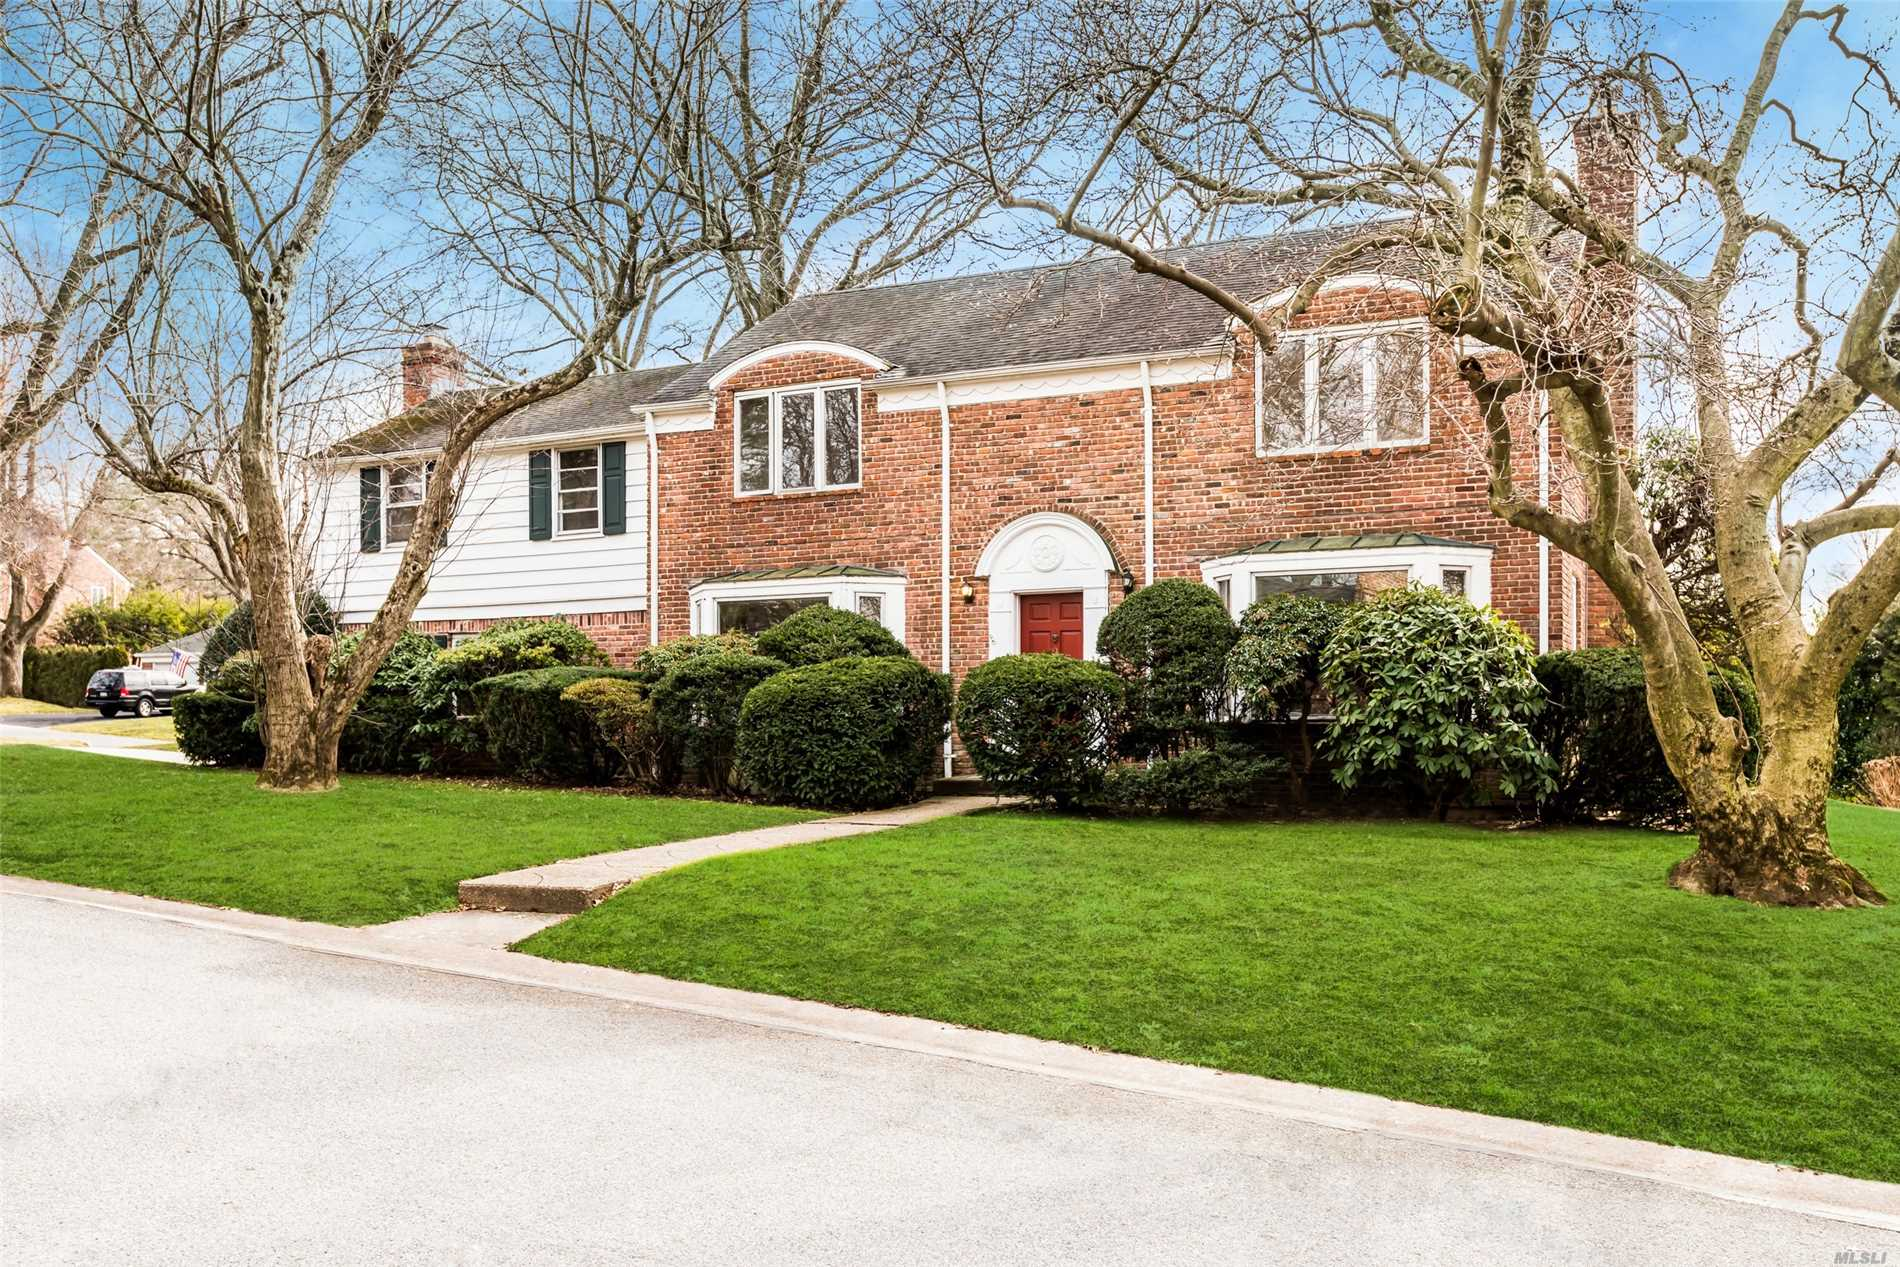 One Of The Best Locations In The Village Of Plandome Heights. This 2900+ Sqft Center Entryway Brick Colonial Boasts Crown Molding, Hardwood Floors, Lg Fam Rm W/Fpl, Formal Din Rm W/Bay Window. Liv Rm W/Fpl, Great For Entertaining E-I-K And Maids Room/Office And Full Bth. Mstr Bdrm W/Bath 3 Oversized Bdrms And Full Hall Bth. Room Over Fam Rm Can Be Used As An Office, New Patio. Low Taxes, Full Basement, Cac. Desirable Manhasset Schools And Parking At Manhasset Train. Make This House Yours!